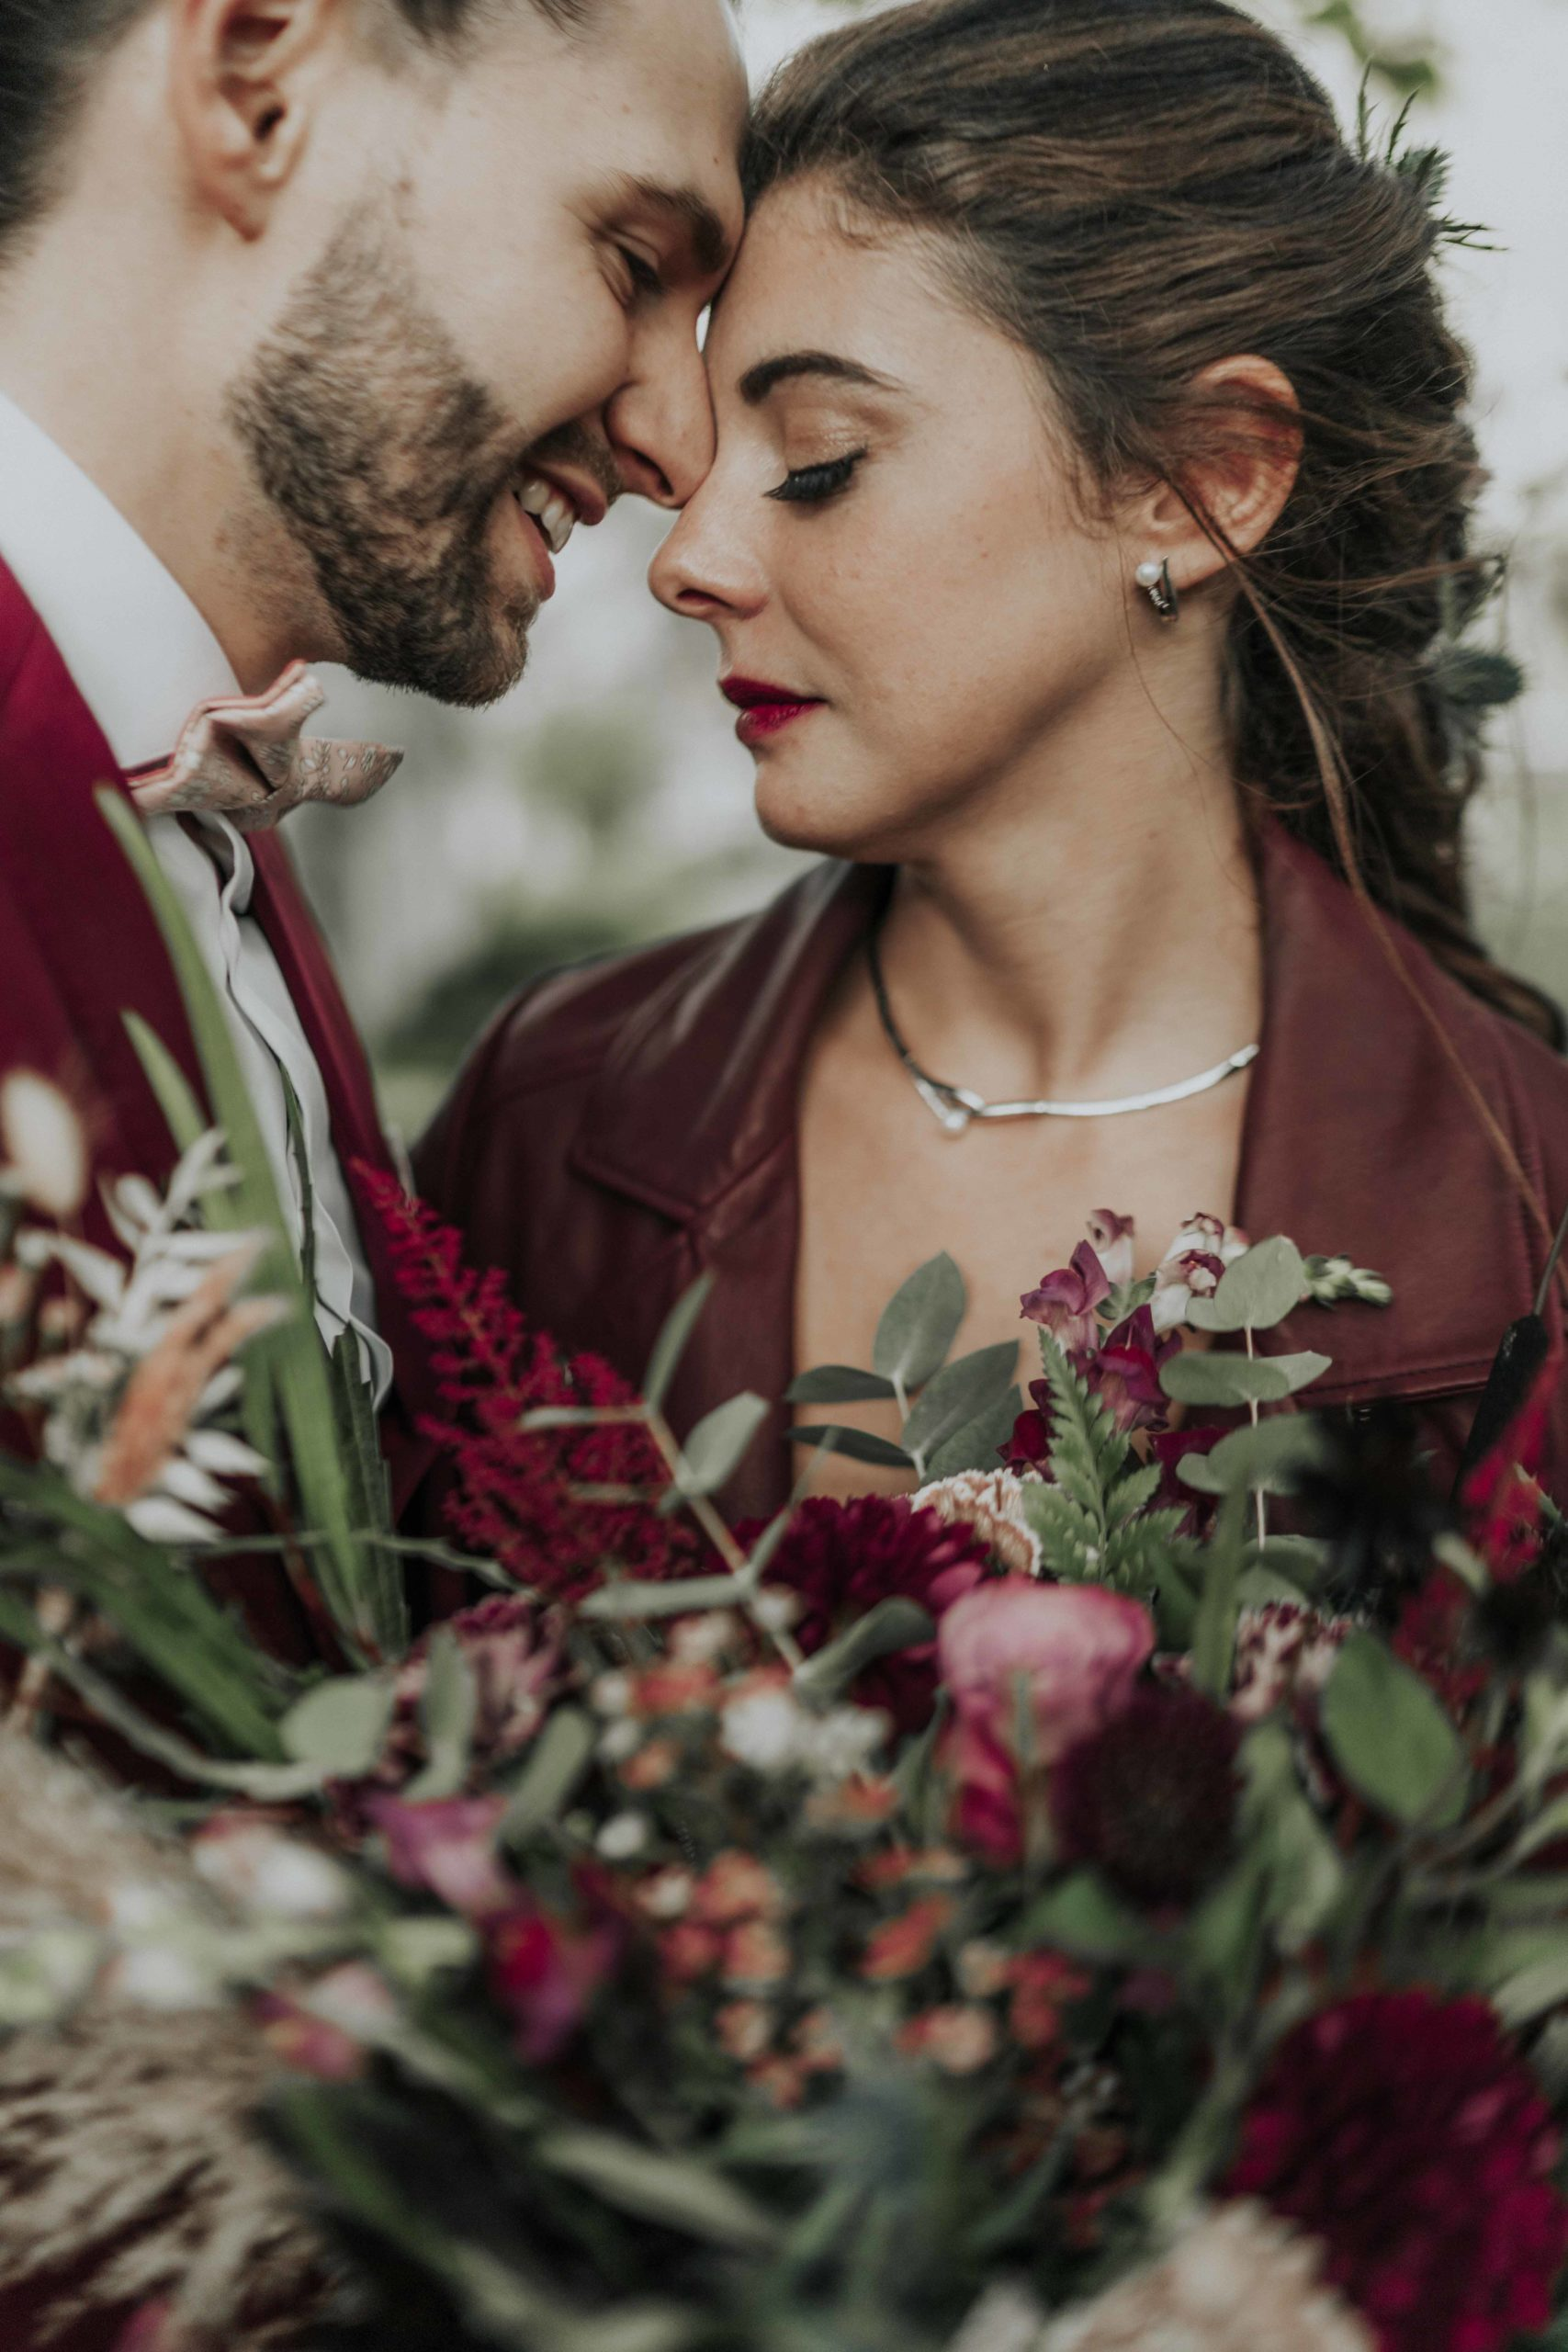 FOREVER_FANNY_MYARD_PHOTOGRAPHY_LN_MARIAGE-526